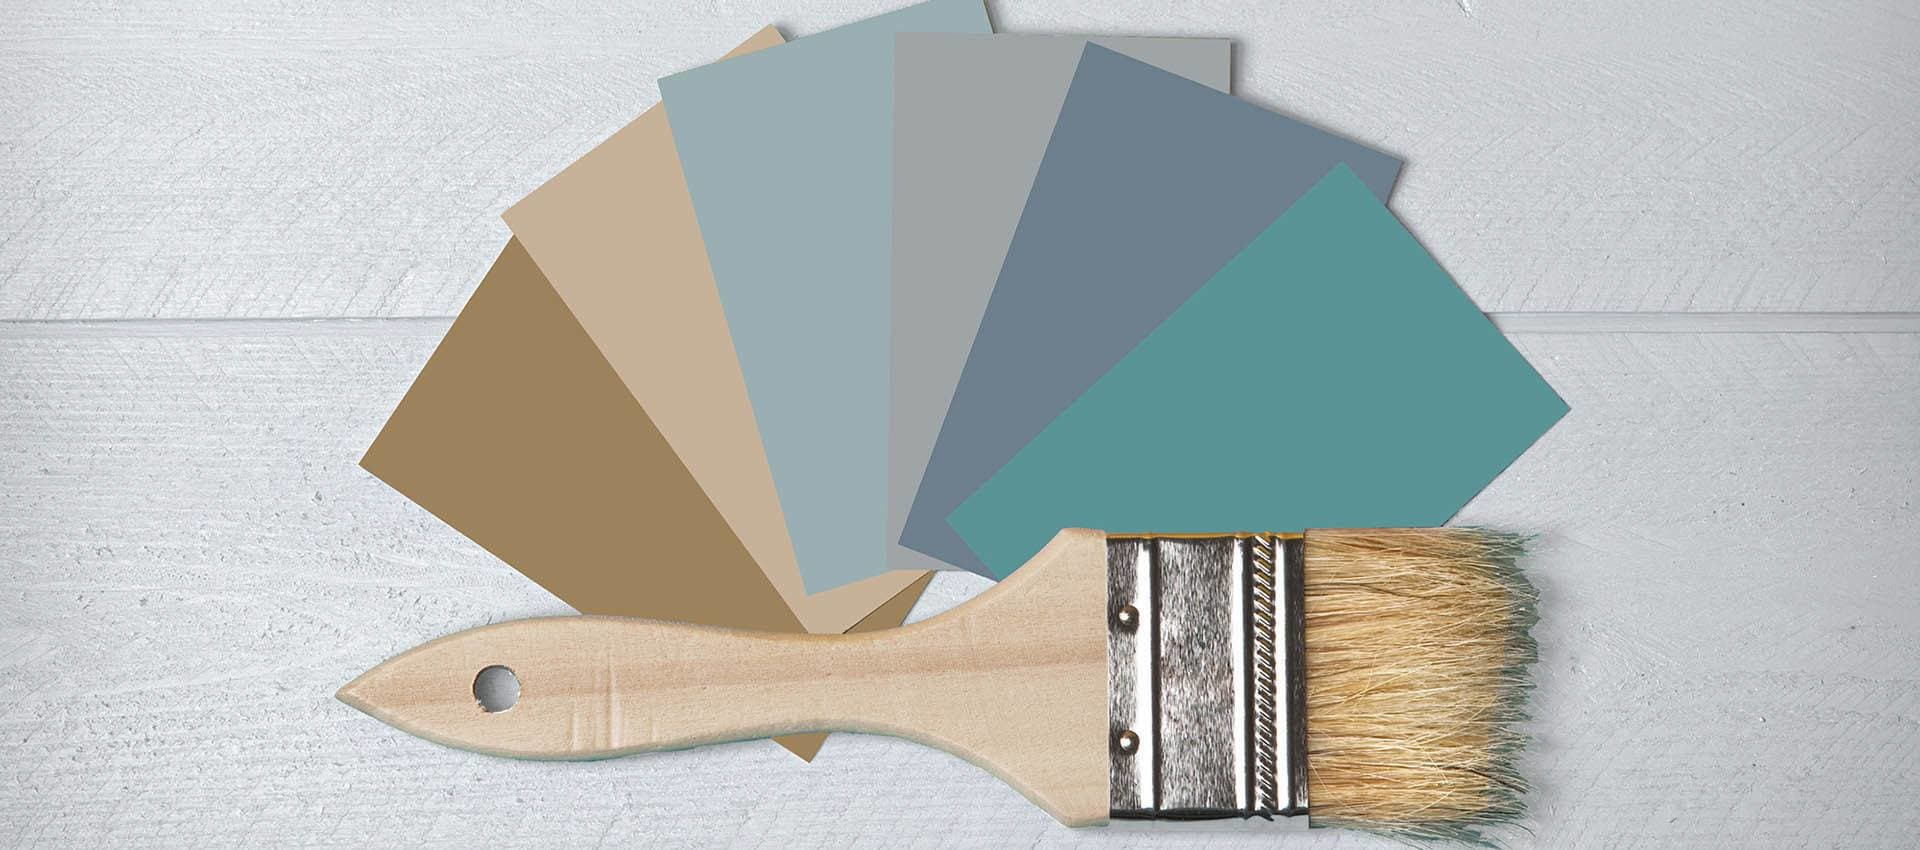 Paint Swatches at Reserve at Capital Center Apartment Homes in Rancho Cordova, California